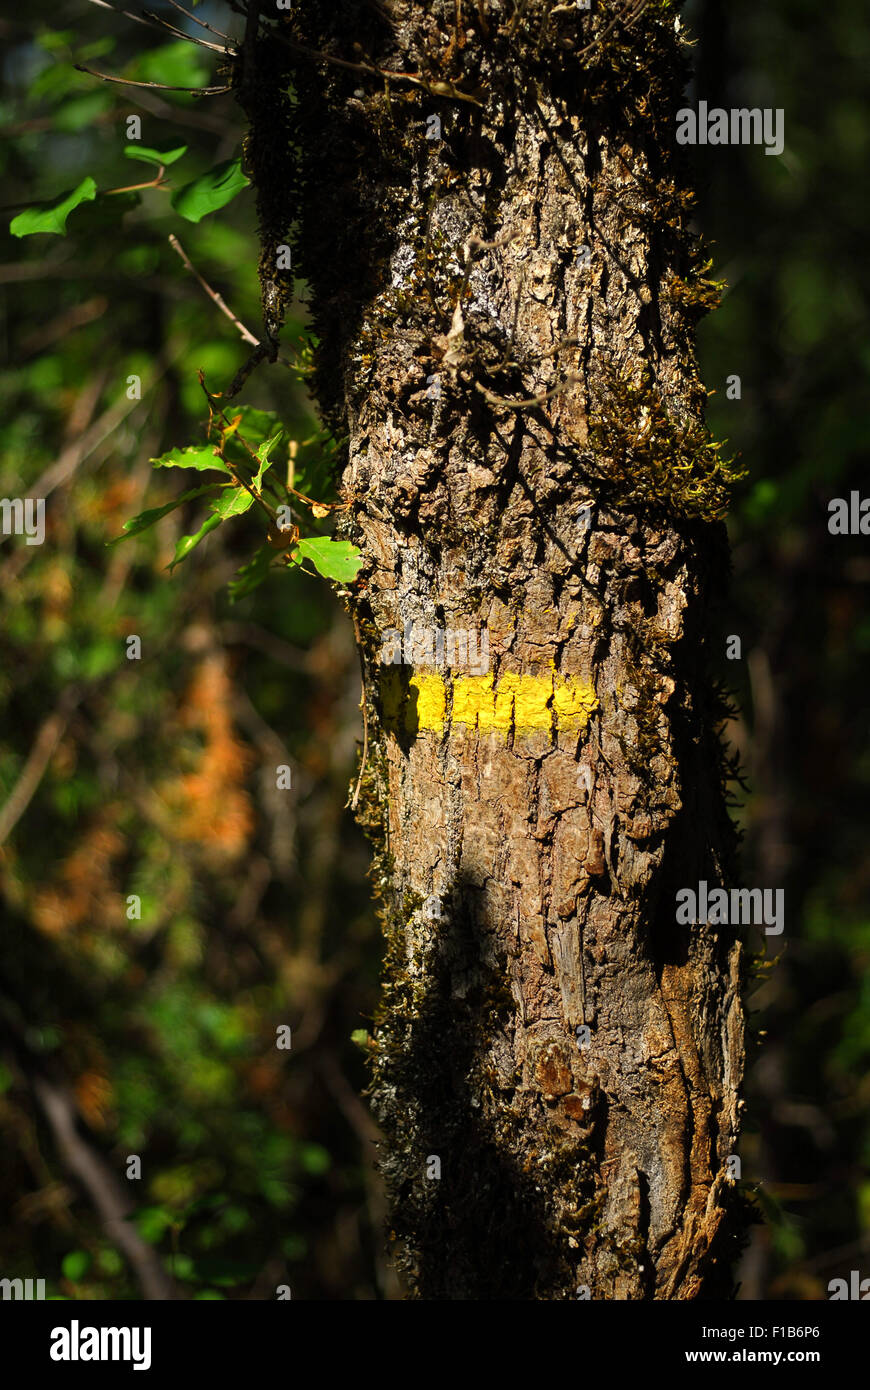 Yellow marker of Promenades et Randonnées (PRs) on tree trunk, Lot Valley Stock Photo